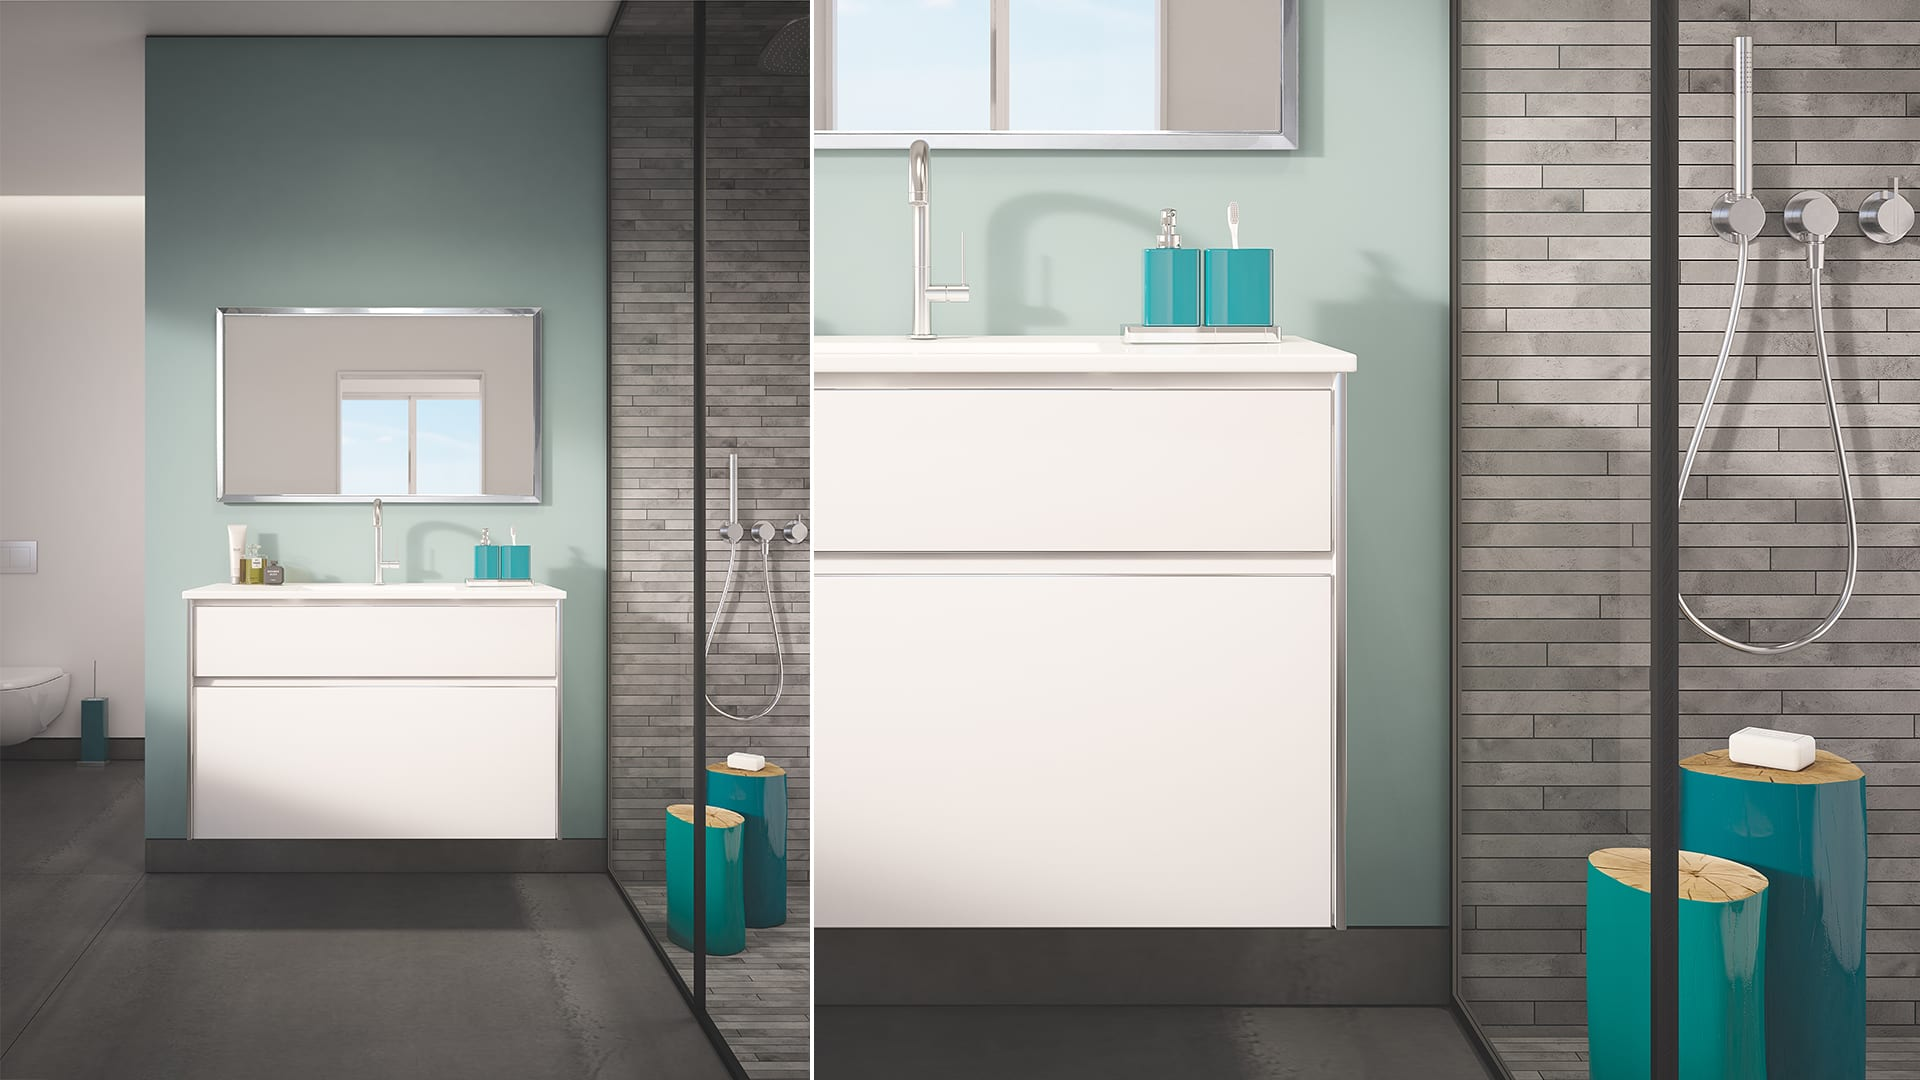 Maayan-Golan_Architectural-Visualization_product-visualization_ Bathroom-cabinets_ company-Ambin-Systems_01